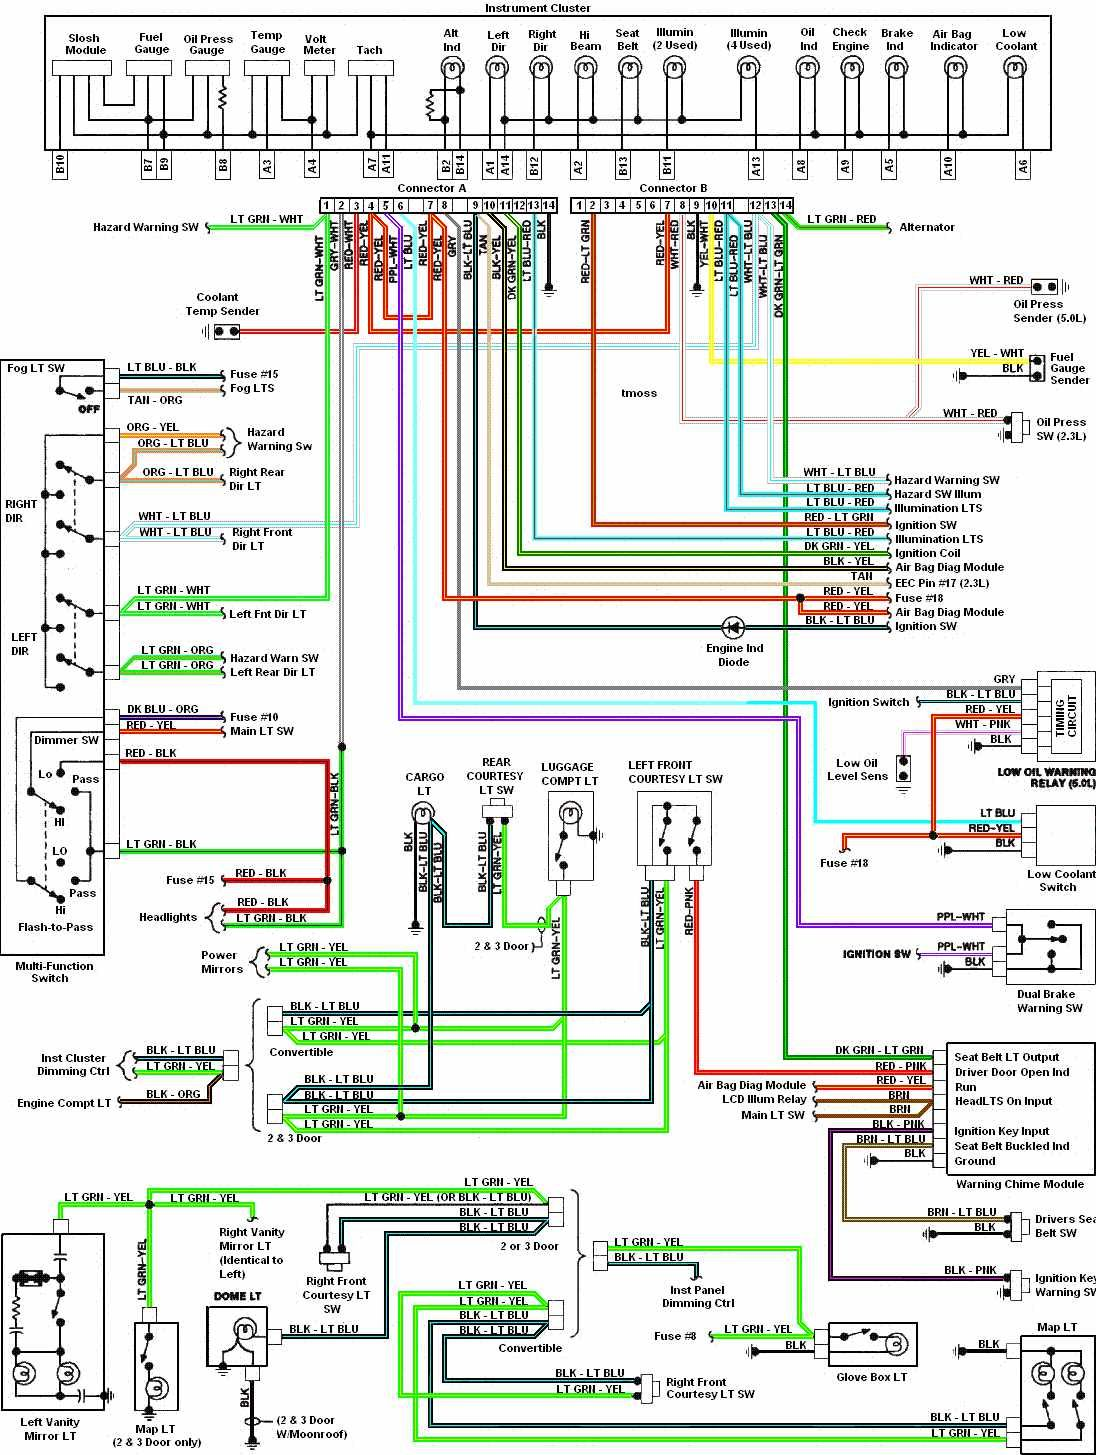 Tremendous 1969 Mustang Dash Wiring Diagram Wiring Diagram Wiring Cloud Hisonuggs Outletorg